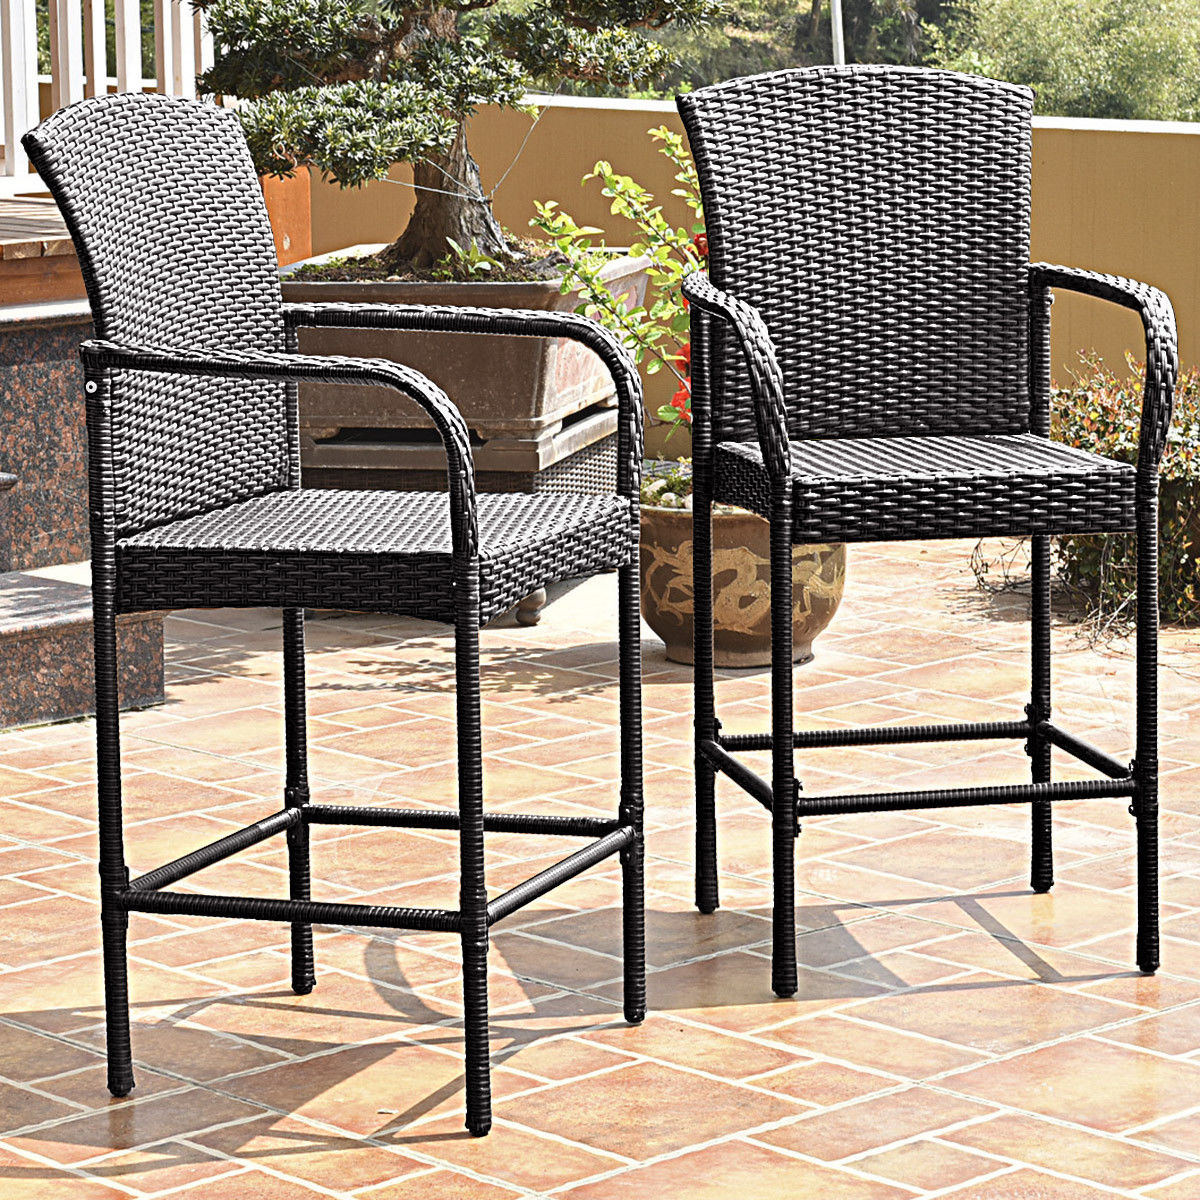 Costway Wicker Outdoor Bar Stool with Armrests, Set of 2